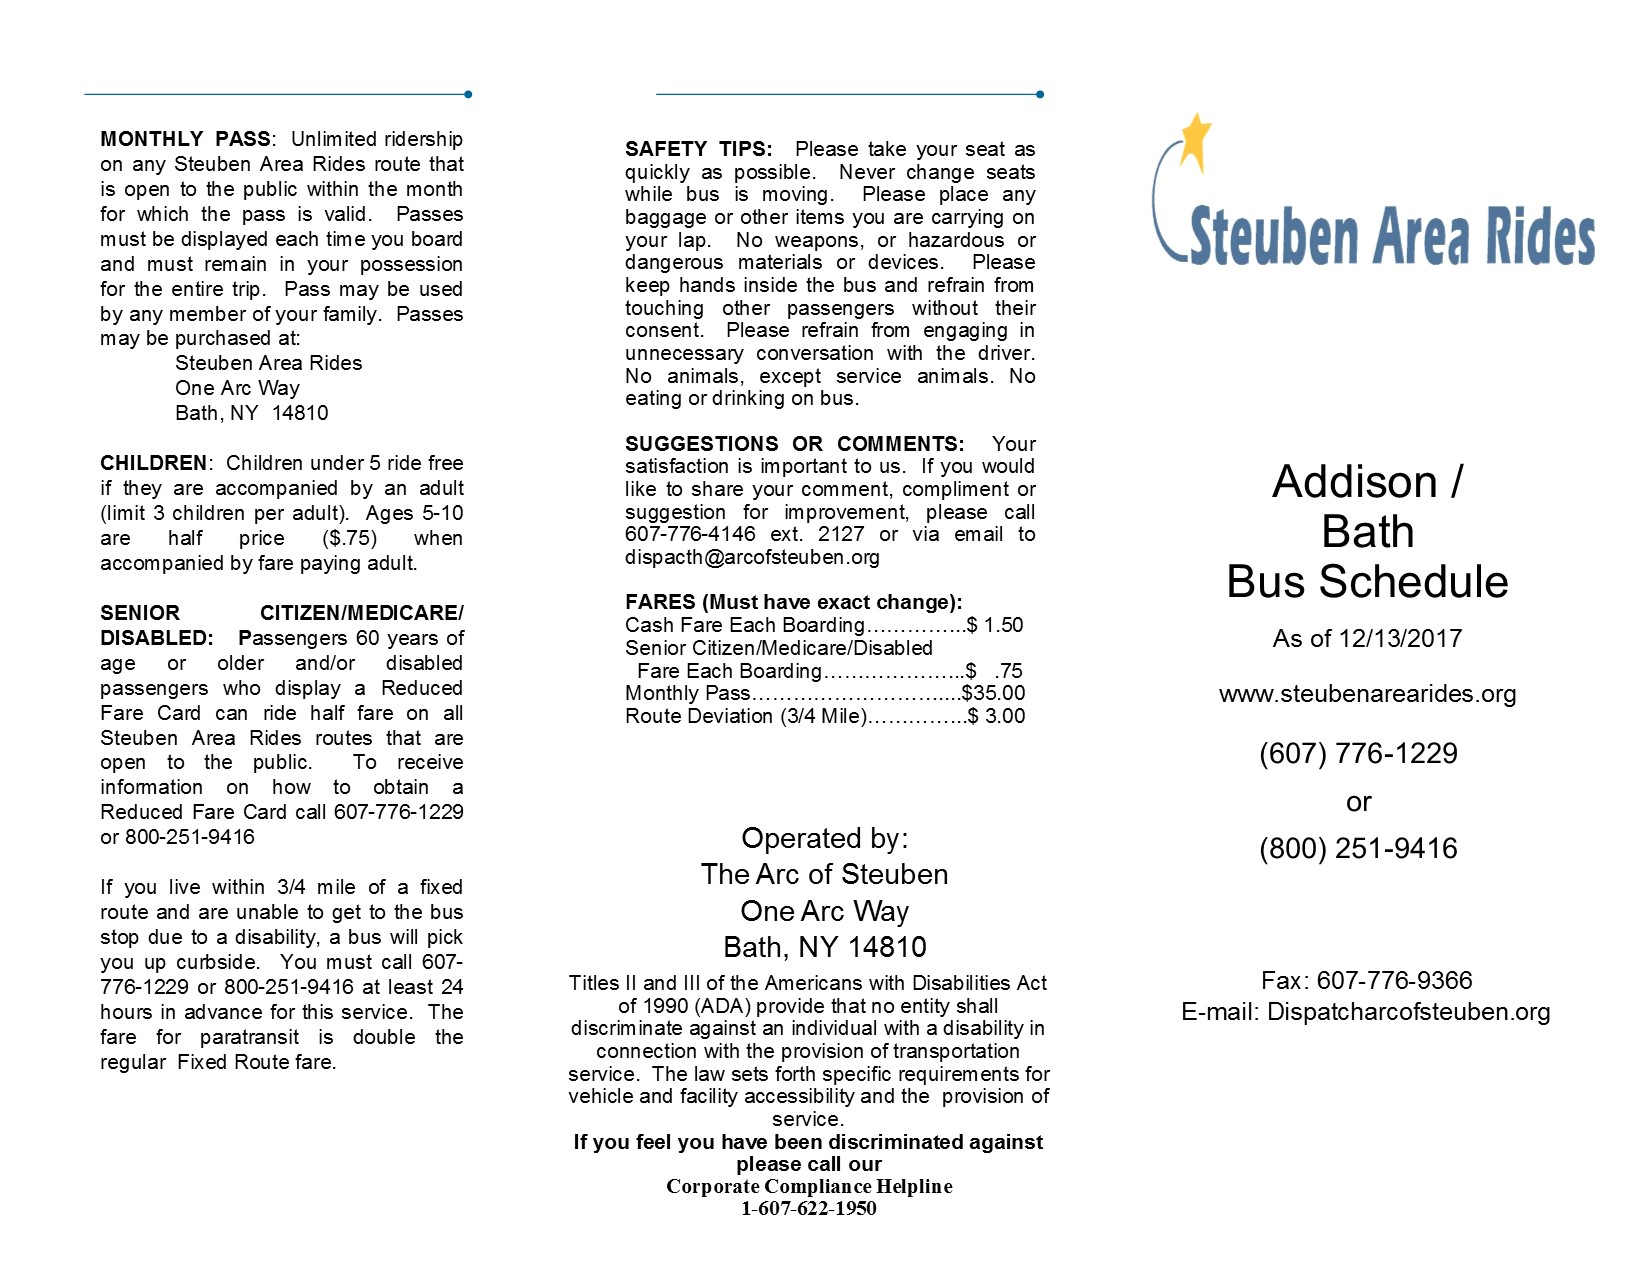 Steuben Area Rides, Public Transportation - Bath, NY | The